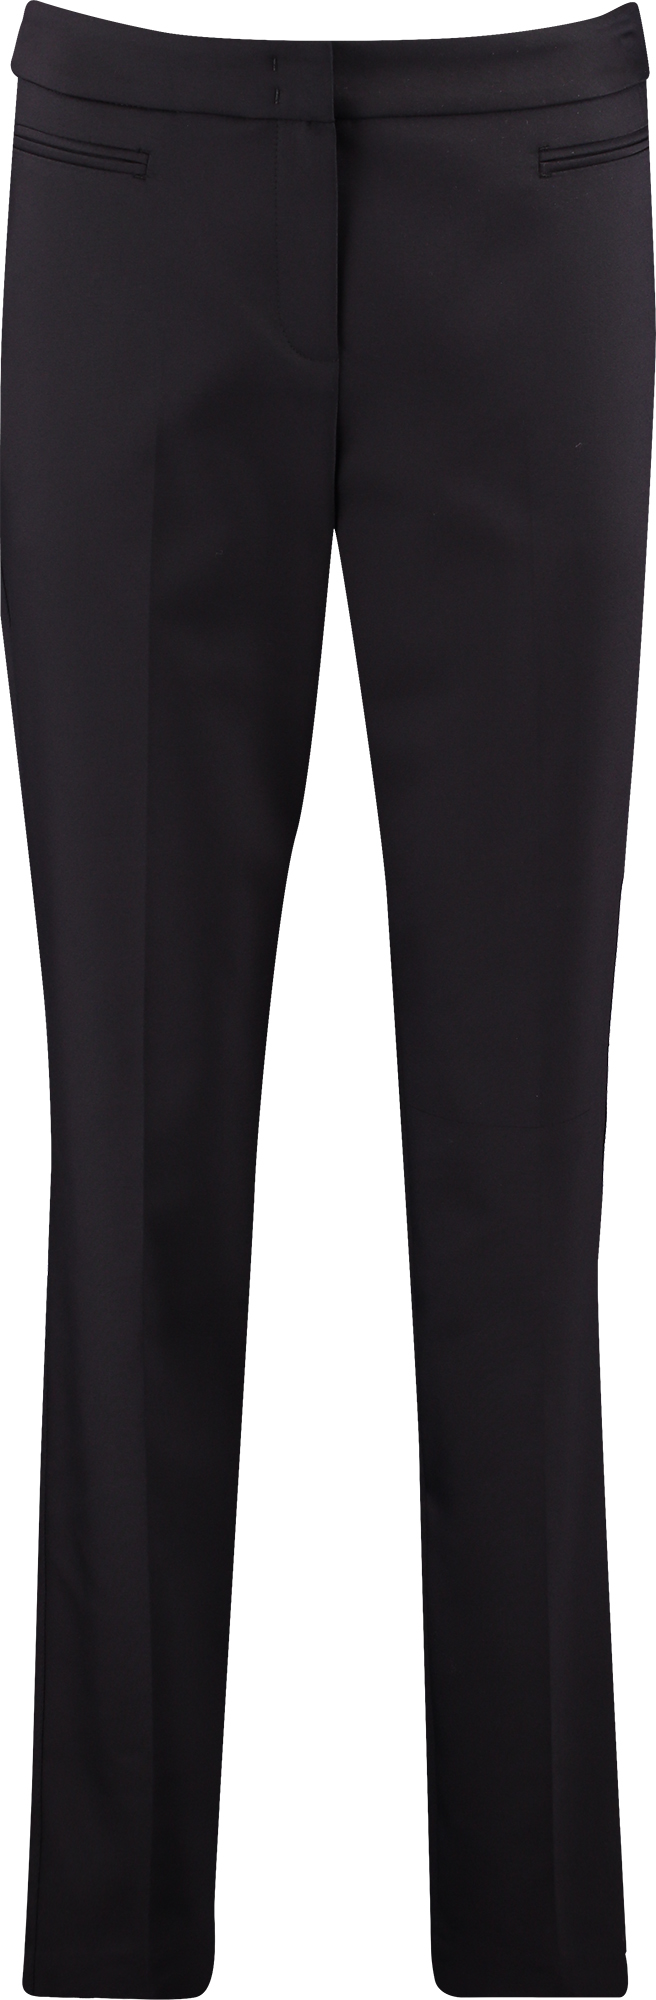 Gerry Weber dames pantalon